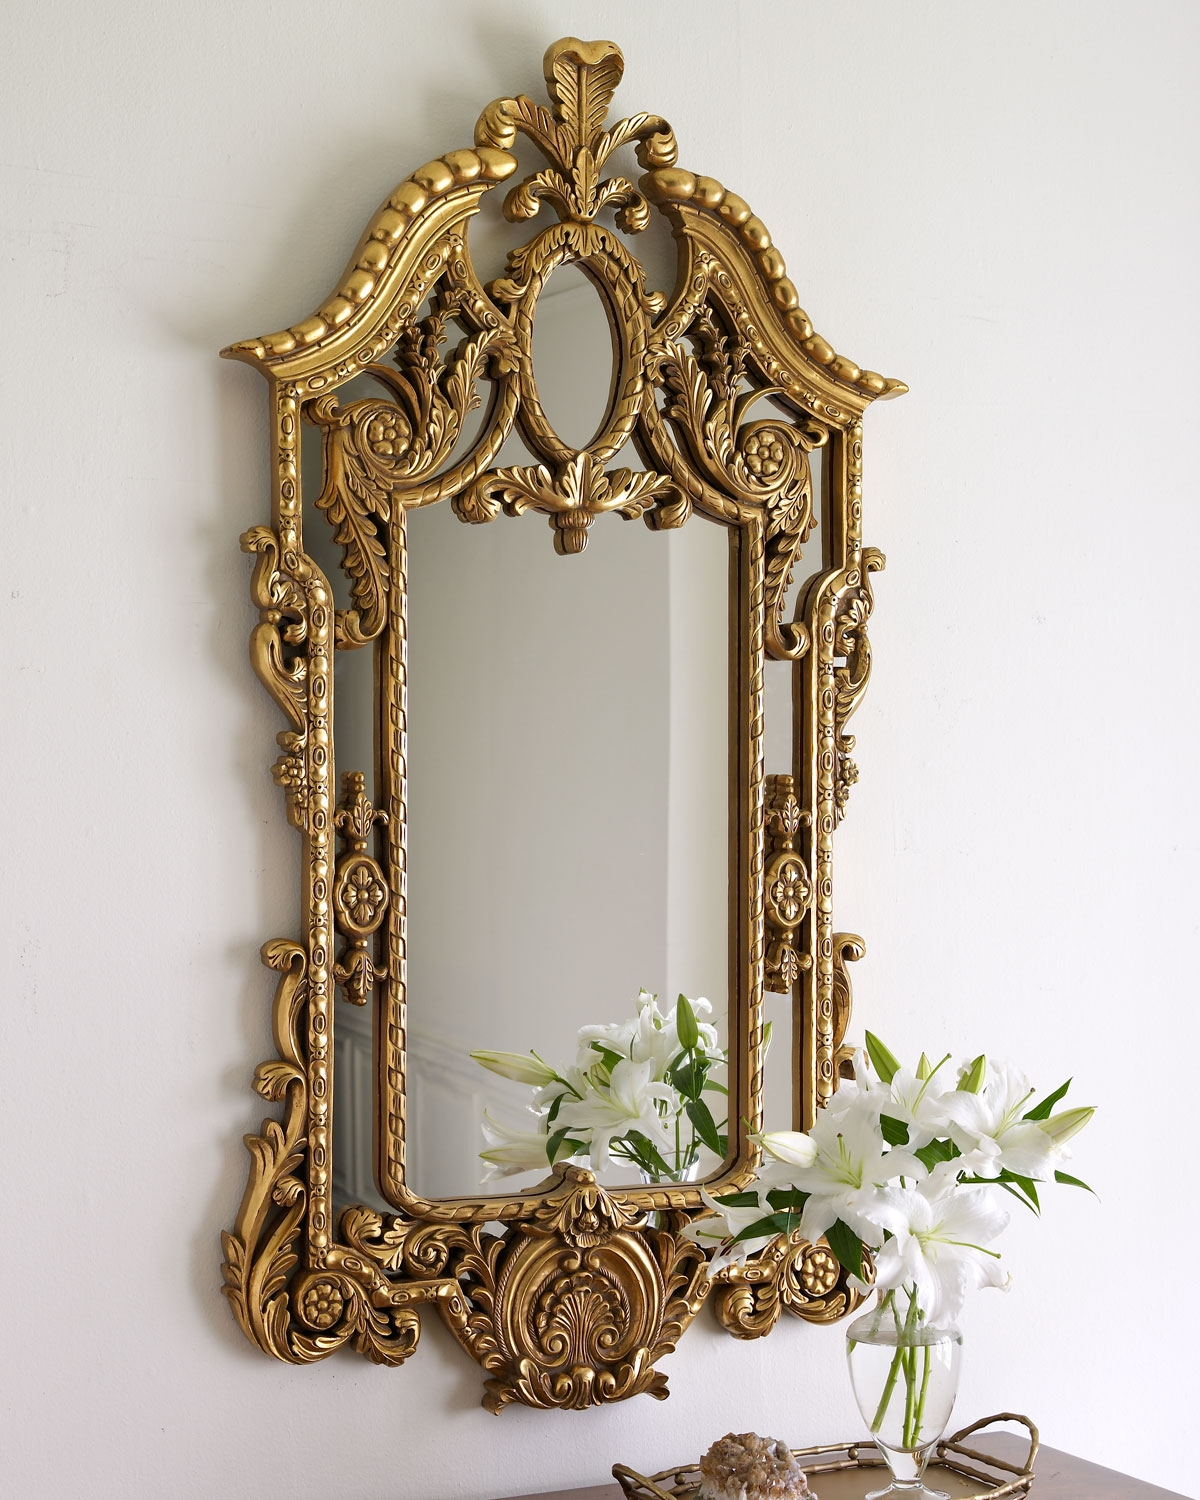 Mirror Gold Frame Antique Best Antique 2017 Intended For Antique Gold Mirrors Large (Image 15 of 15)